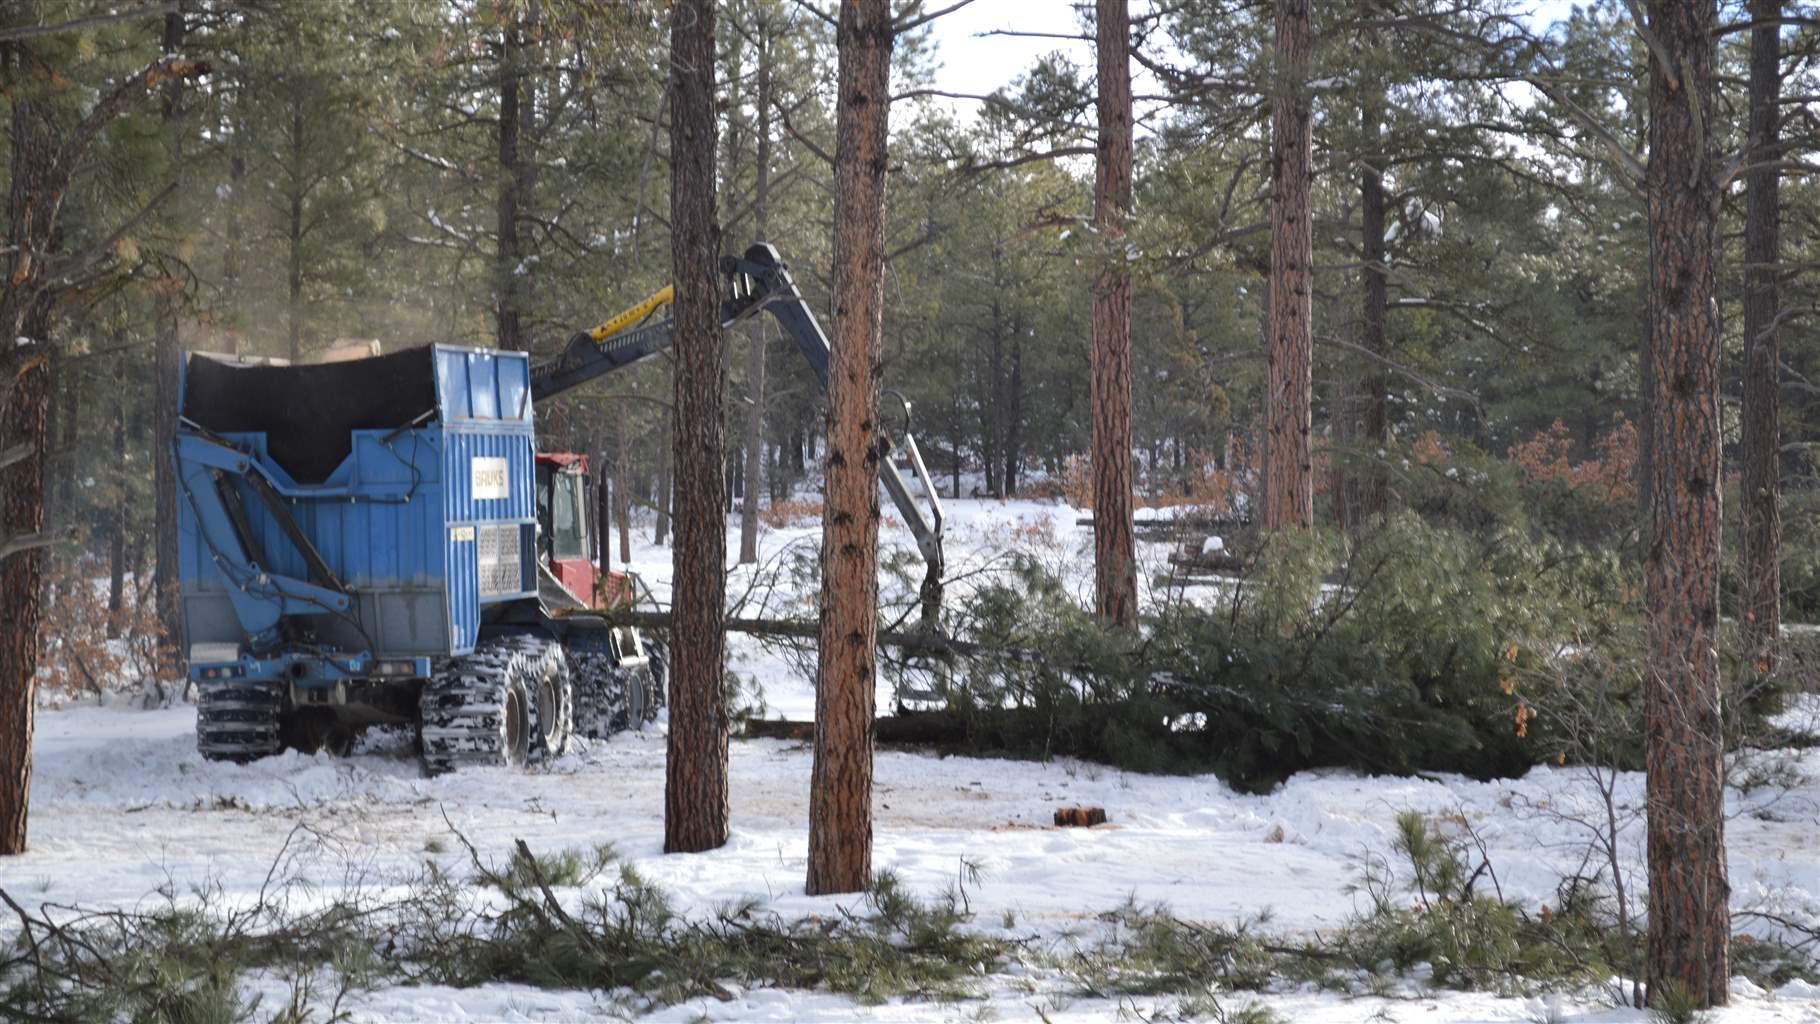 Communities Want Trees Thinned  Timber Companies Want